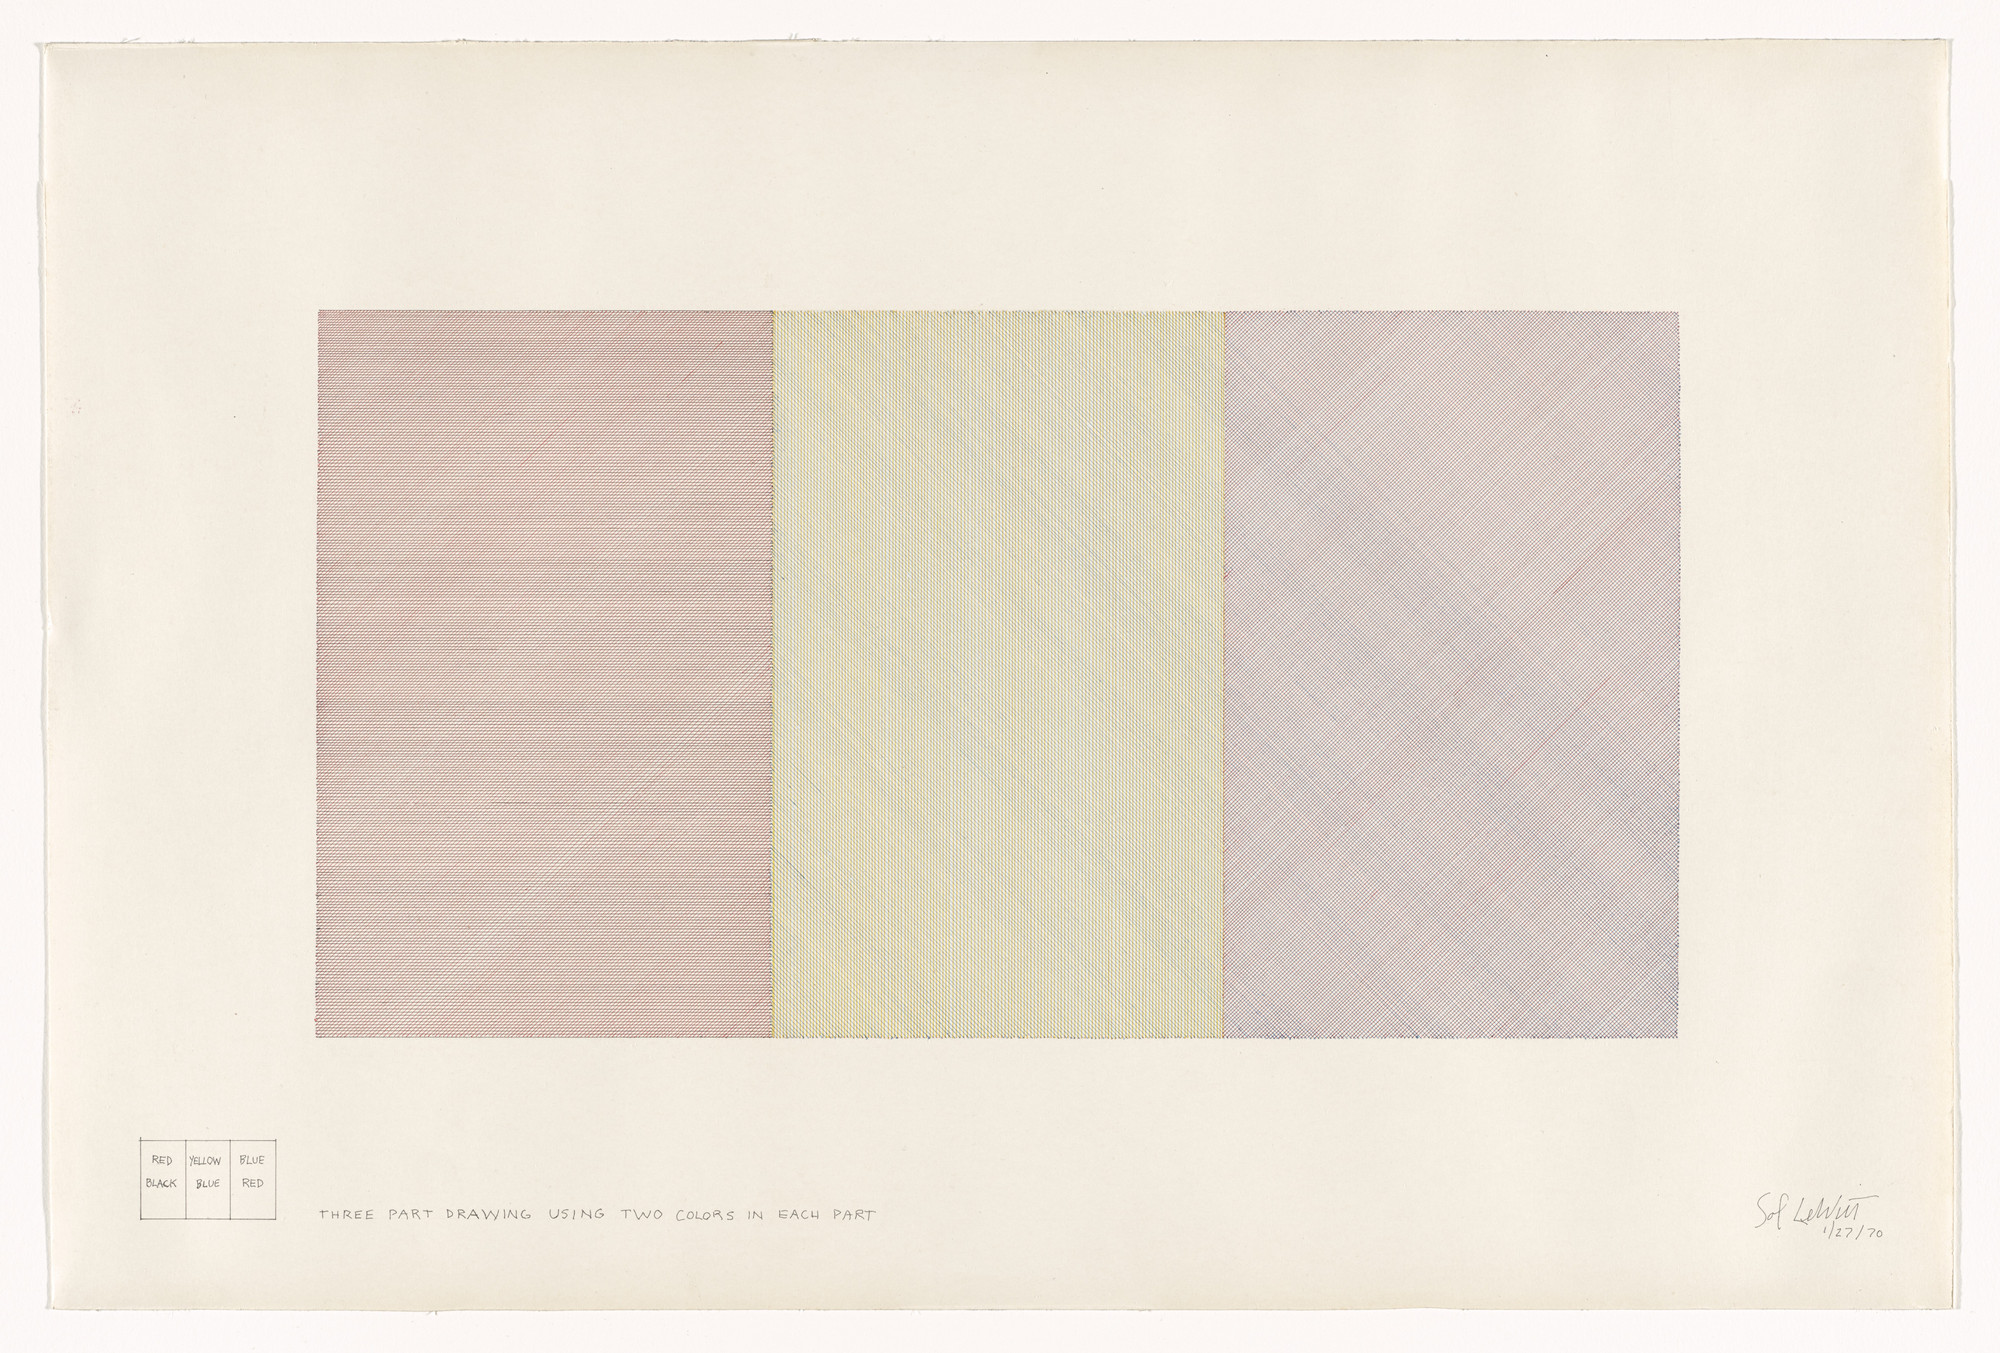 Sol LeWitt. Three Part Drawing Using Two Colors in Each Part. 1970